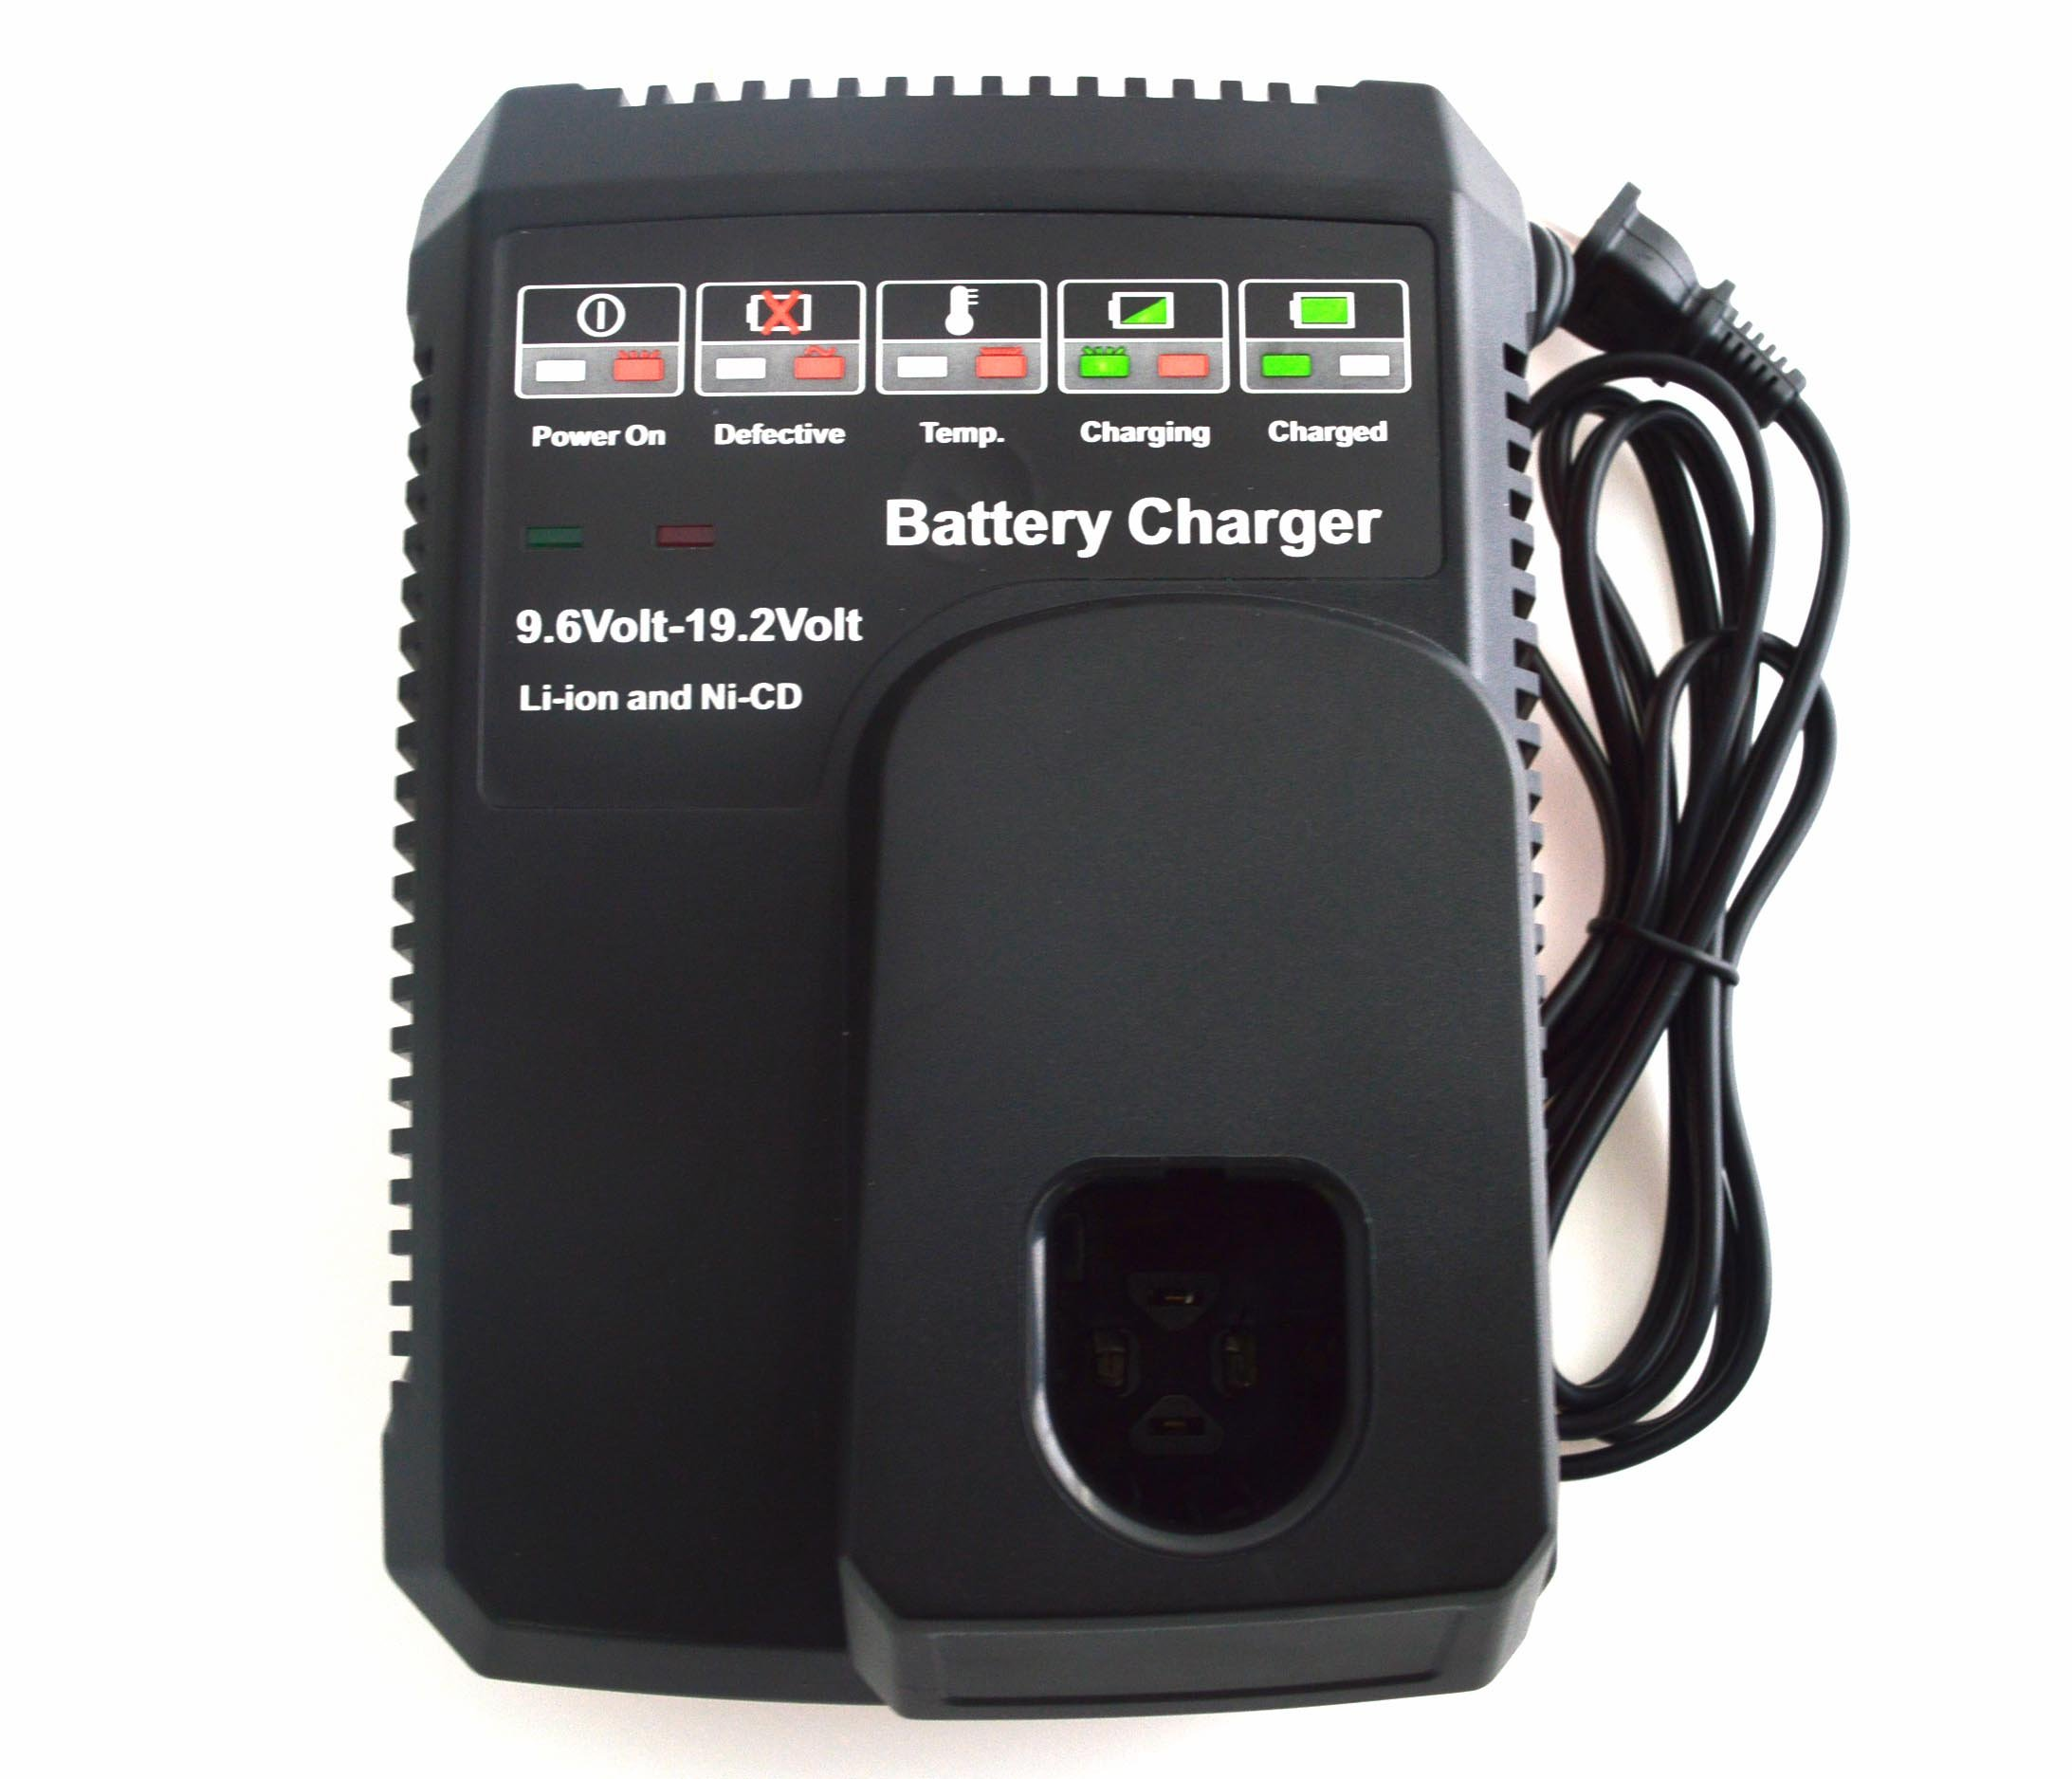 Janri Relacement Li-ion lithium ion & Ni-cd / Ni-Cad power tool Battery Charger kit 9.6V MAX and 19.2V MAX For Craftsman C3 1425301